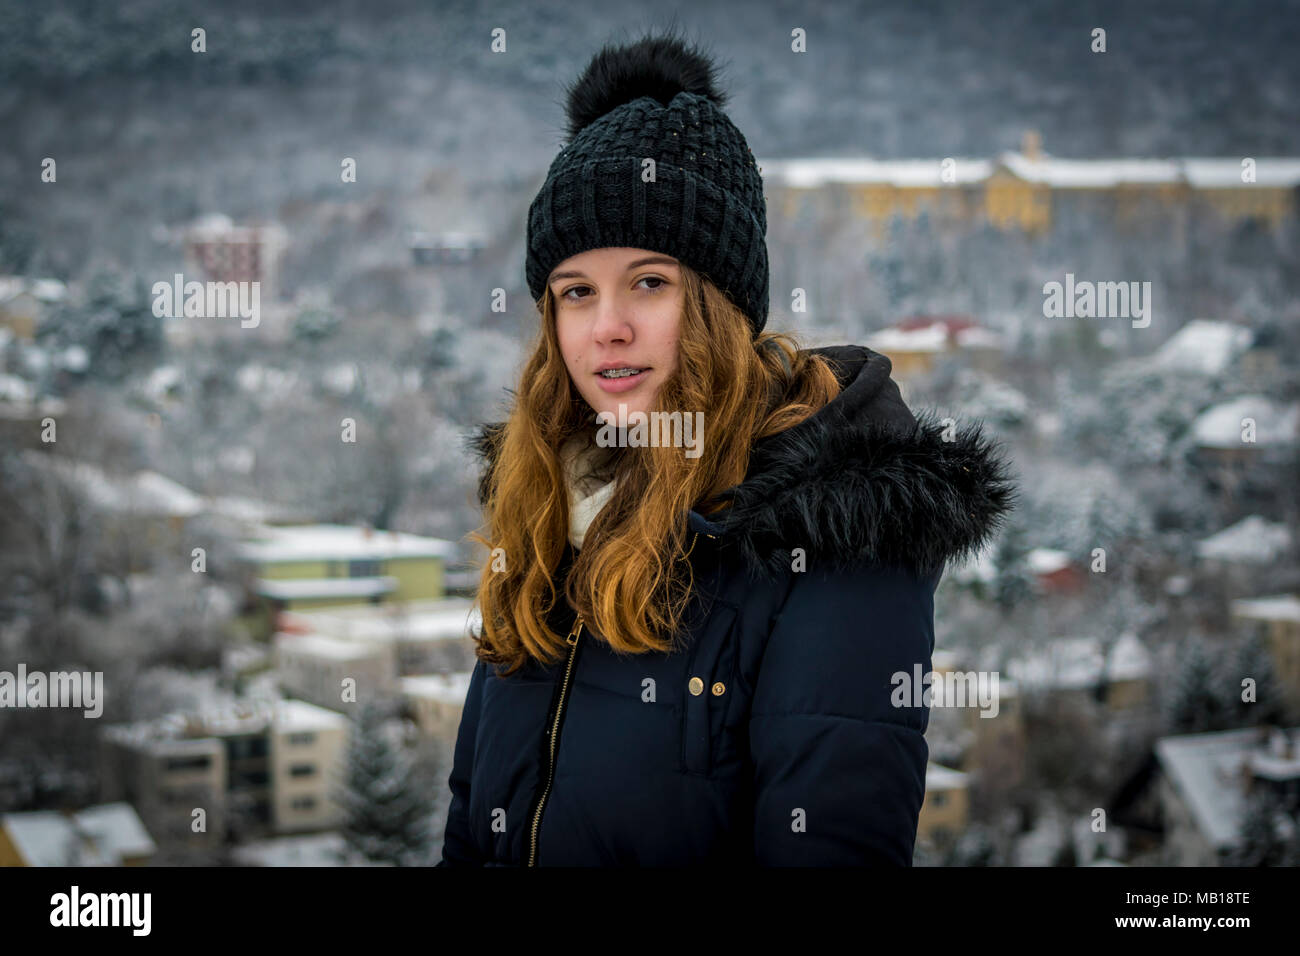 Half body portrait of beautiful Caucasian teenage girl at winter. Pretty teen girl in snow, facing camera, blurred snowy city in background. - Stock Image